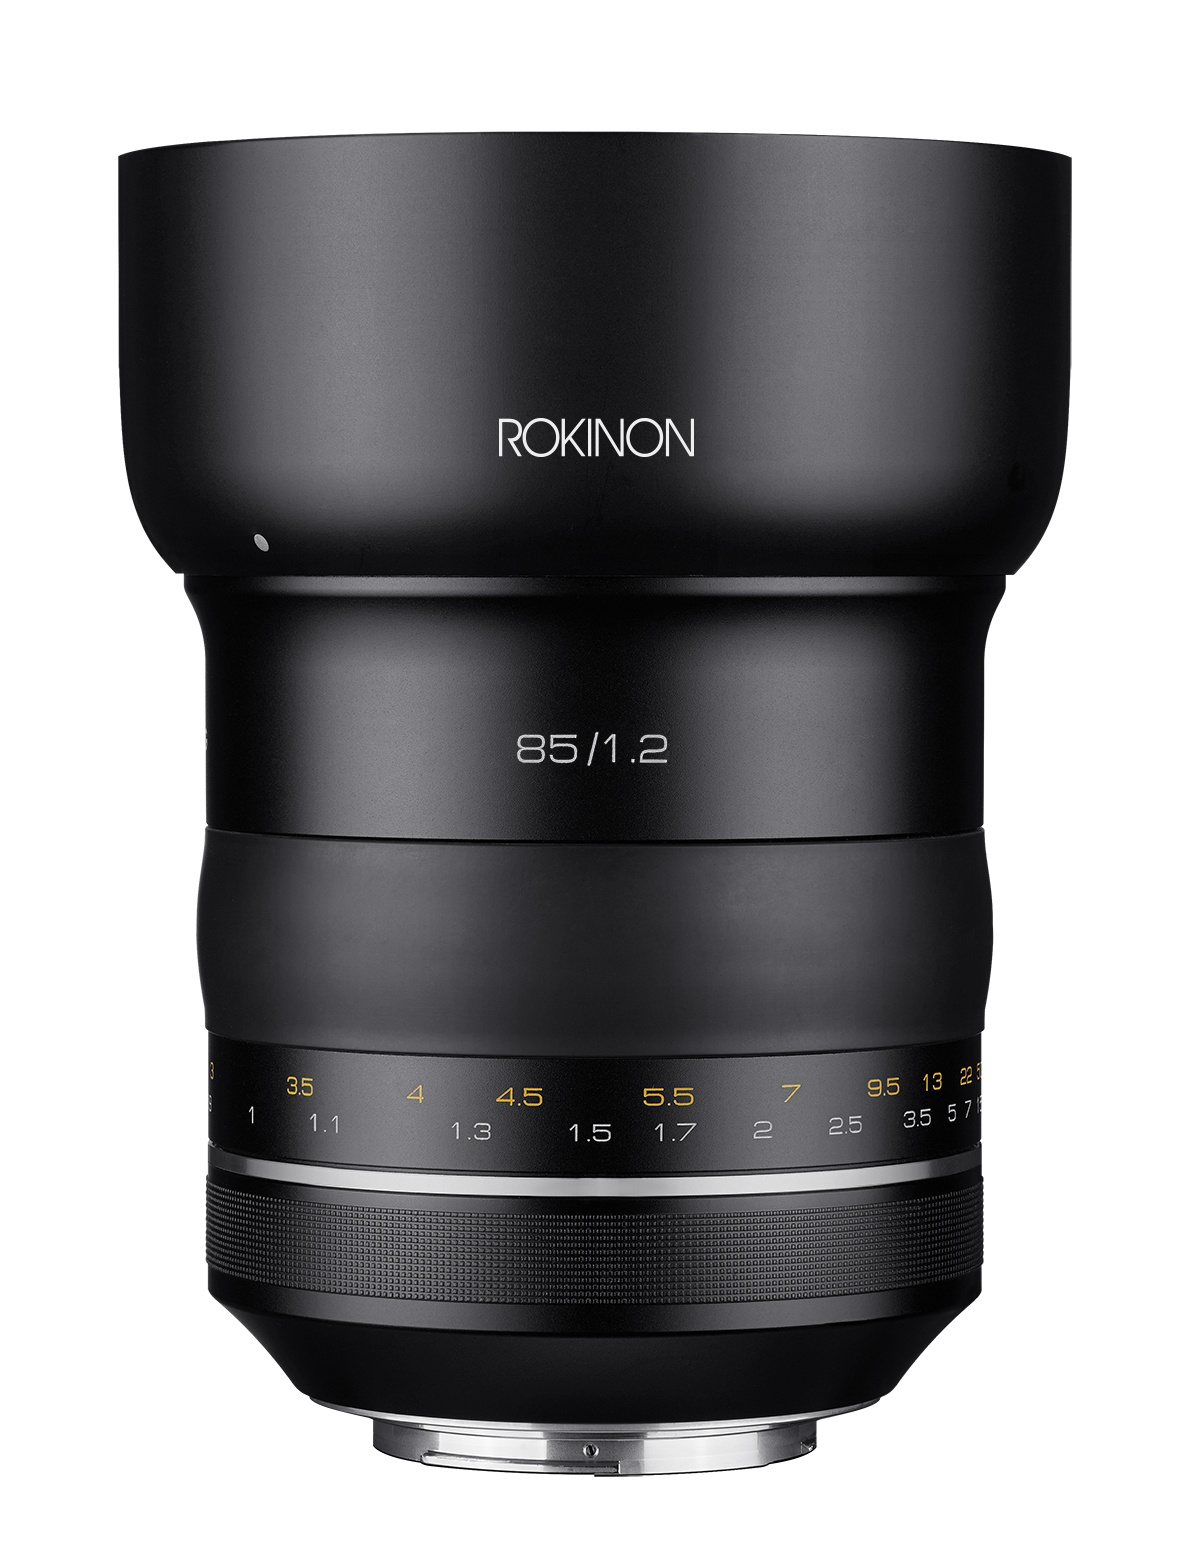 Rokinon SP 85mm f/1.2